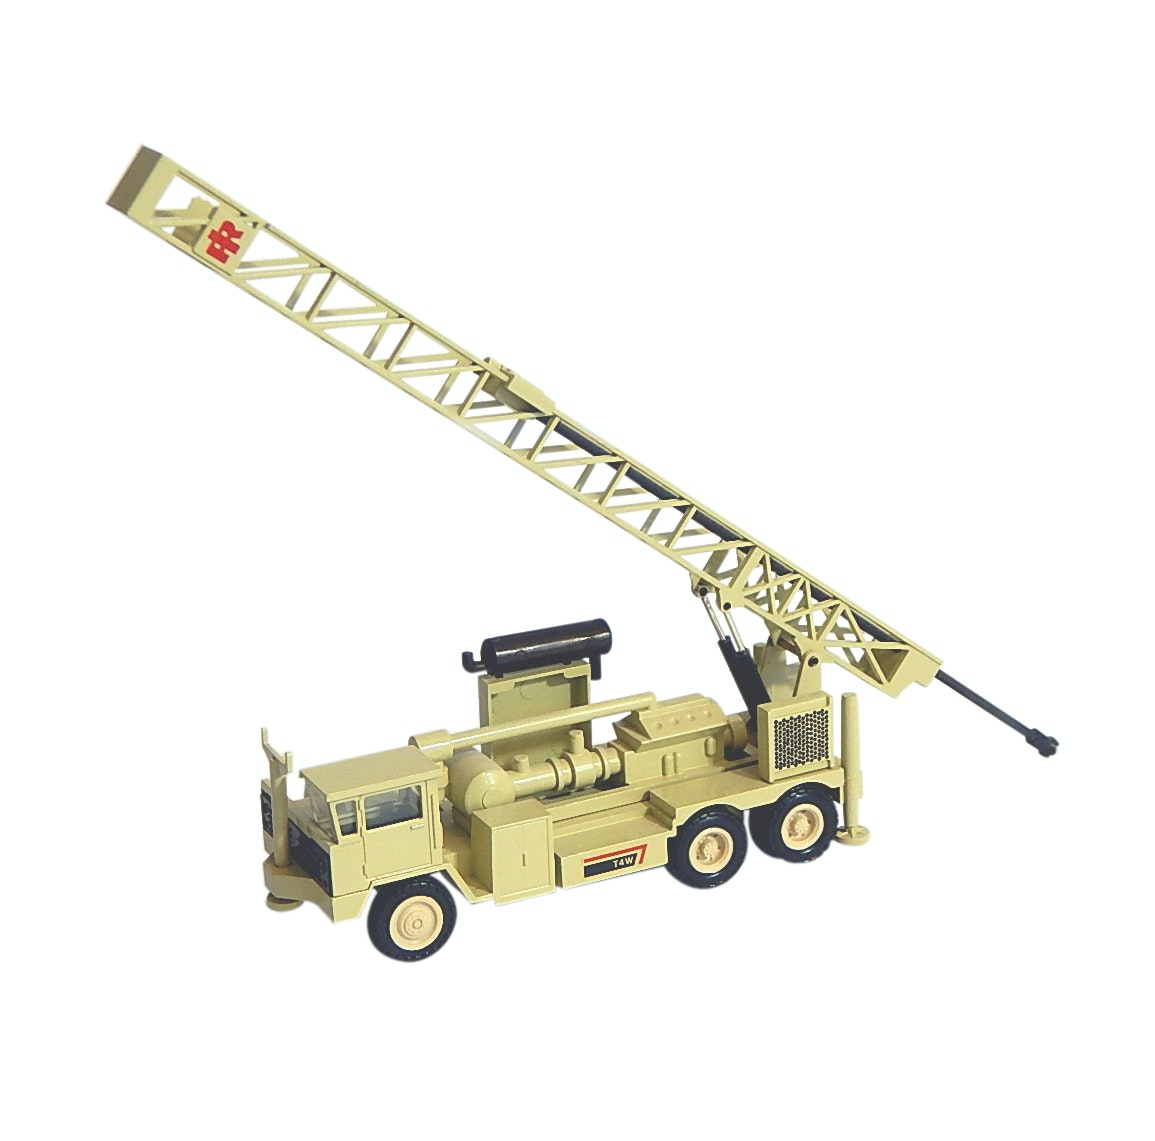 Die Cast NZG No. 229 1:50 Scale Ingersoll Rand T4W Drillmaster Rigger - Germany